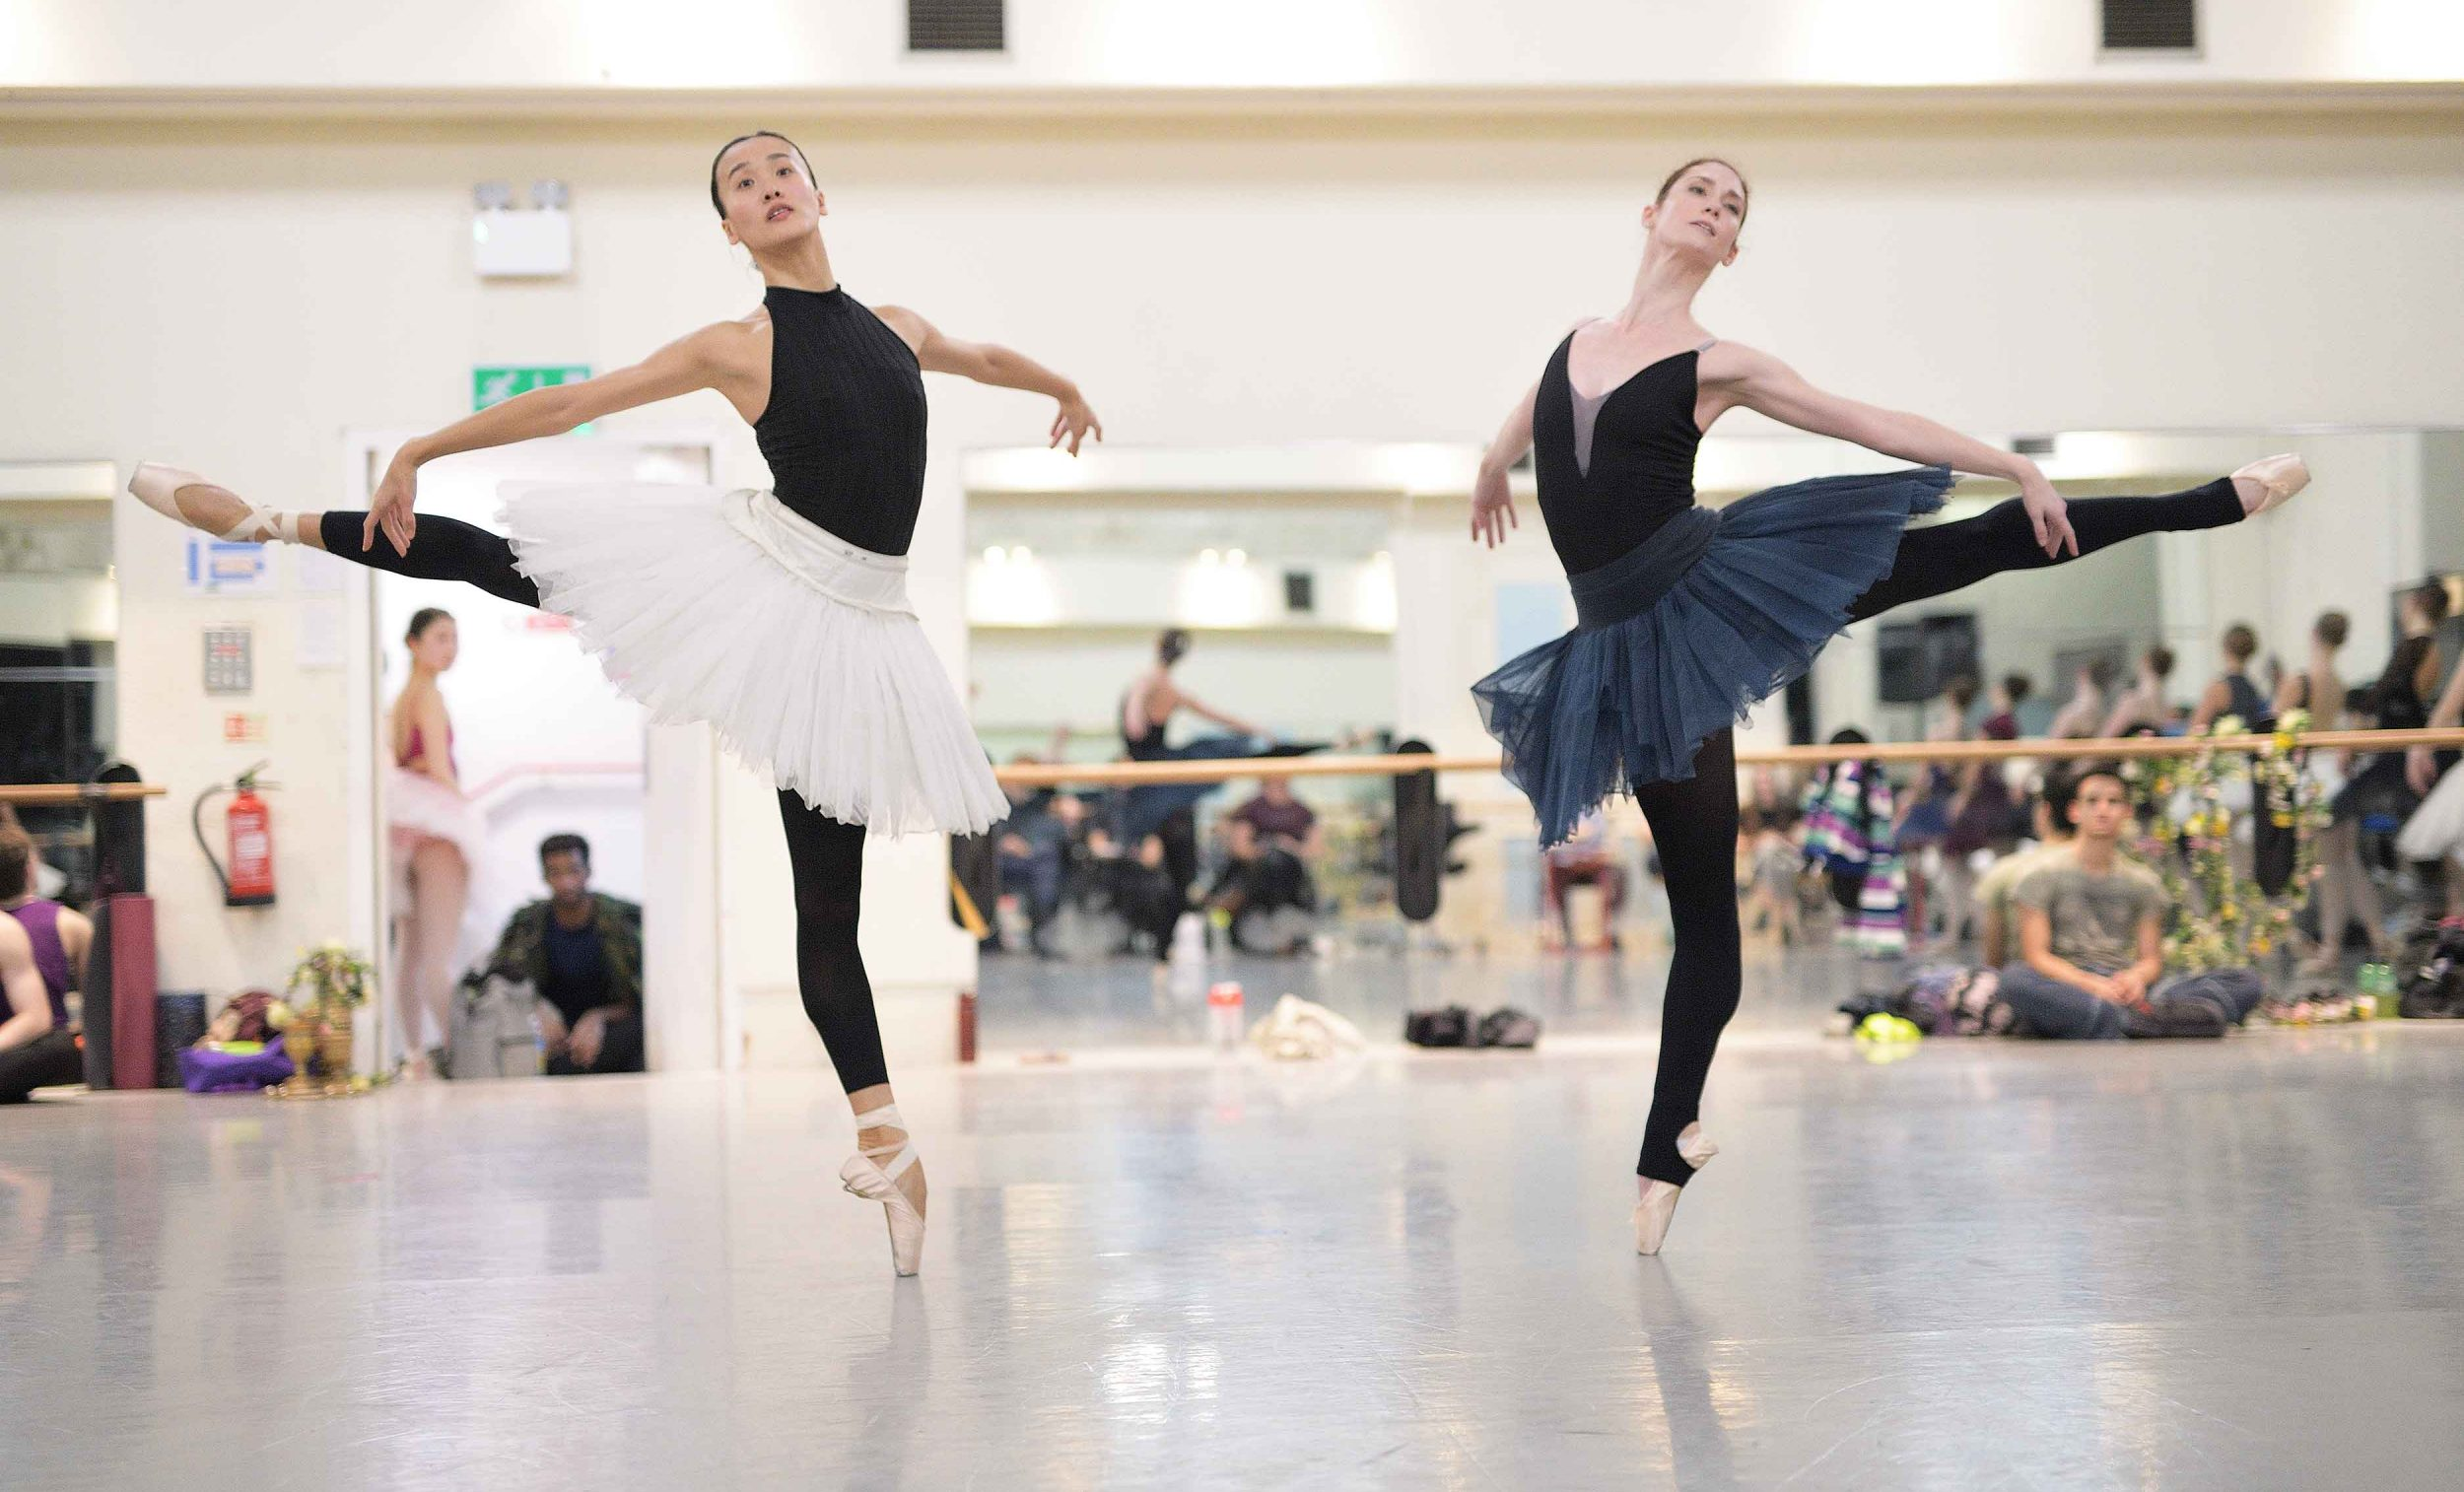 Jia-Zhang-and-Alison-McWhinney-in-rehearsals-for-Swan-Lake-(c)-Laurent-Liotardo_web